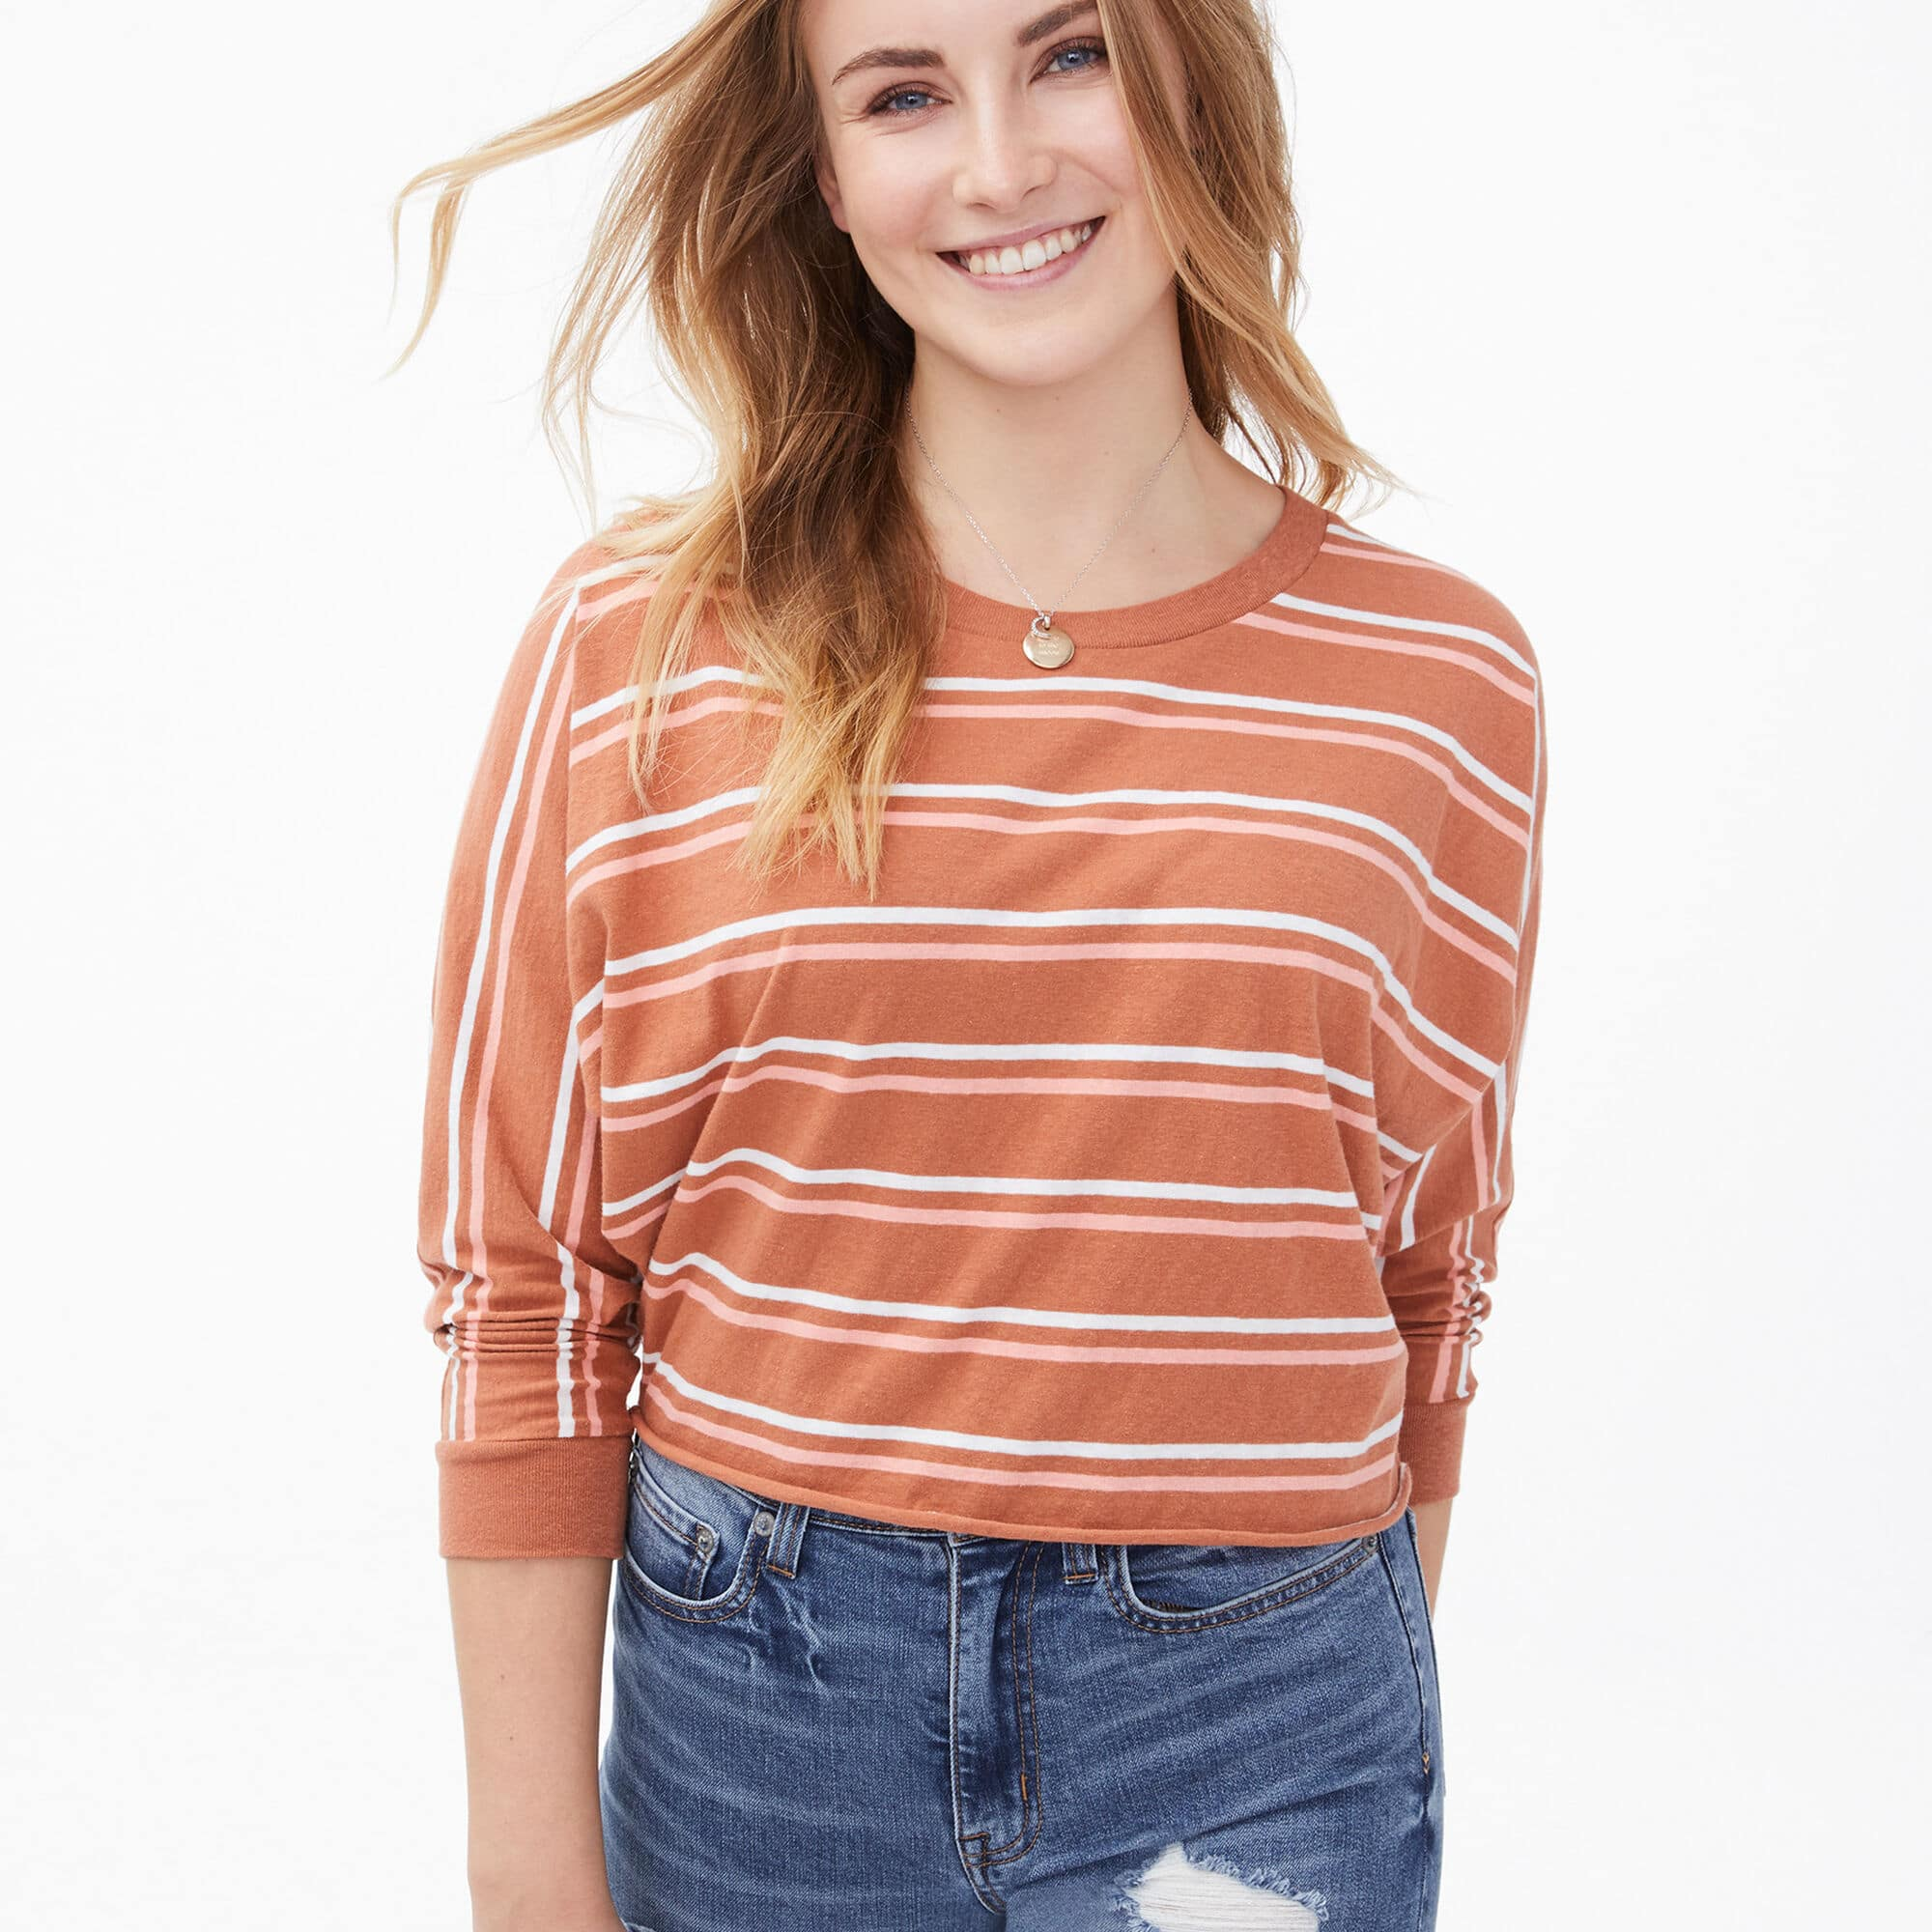 Striped Cropped Dolman Crew Tee $10